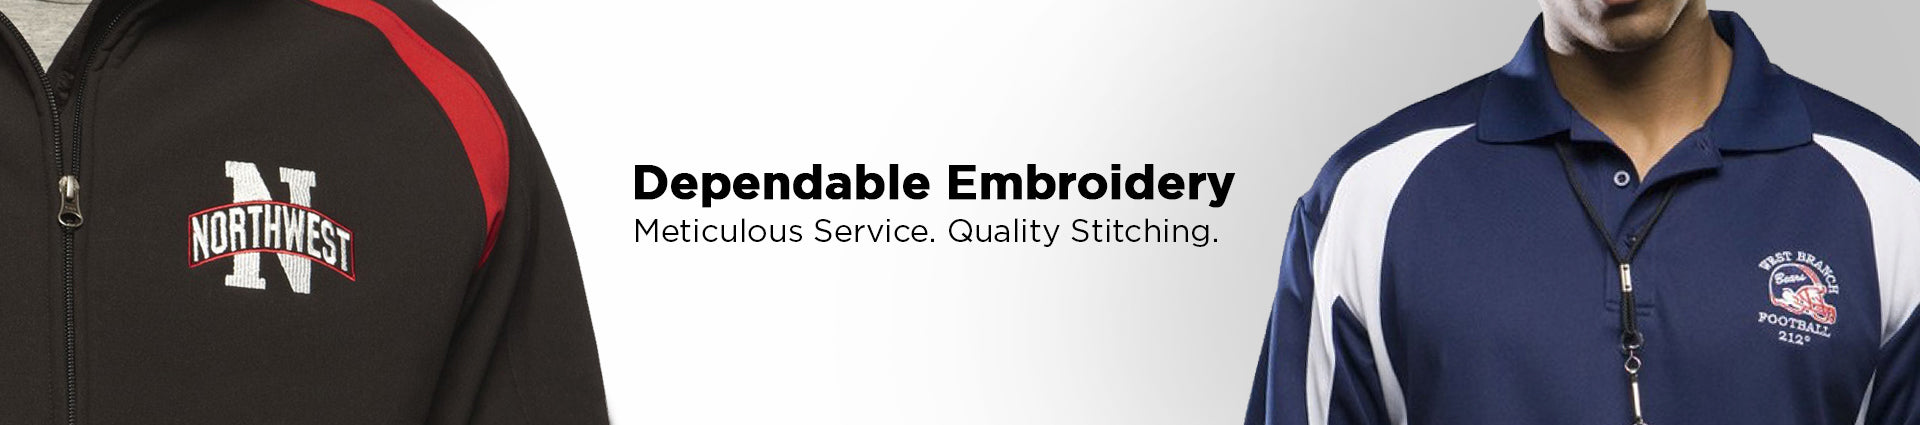 Embroidery Policies